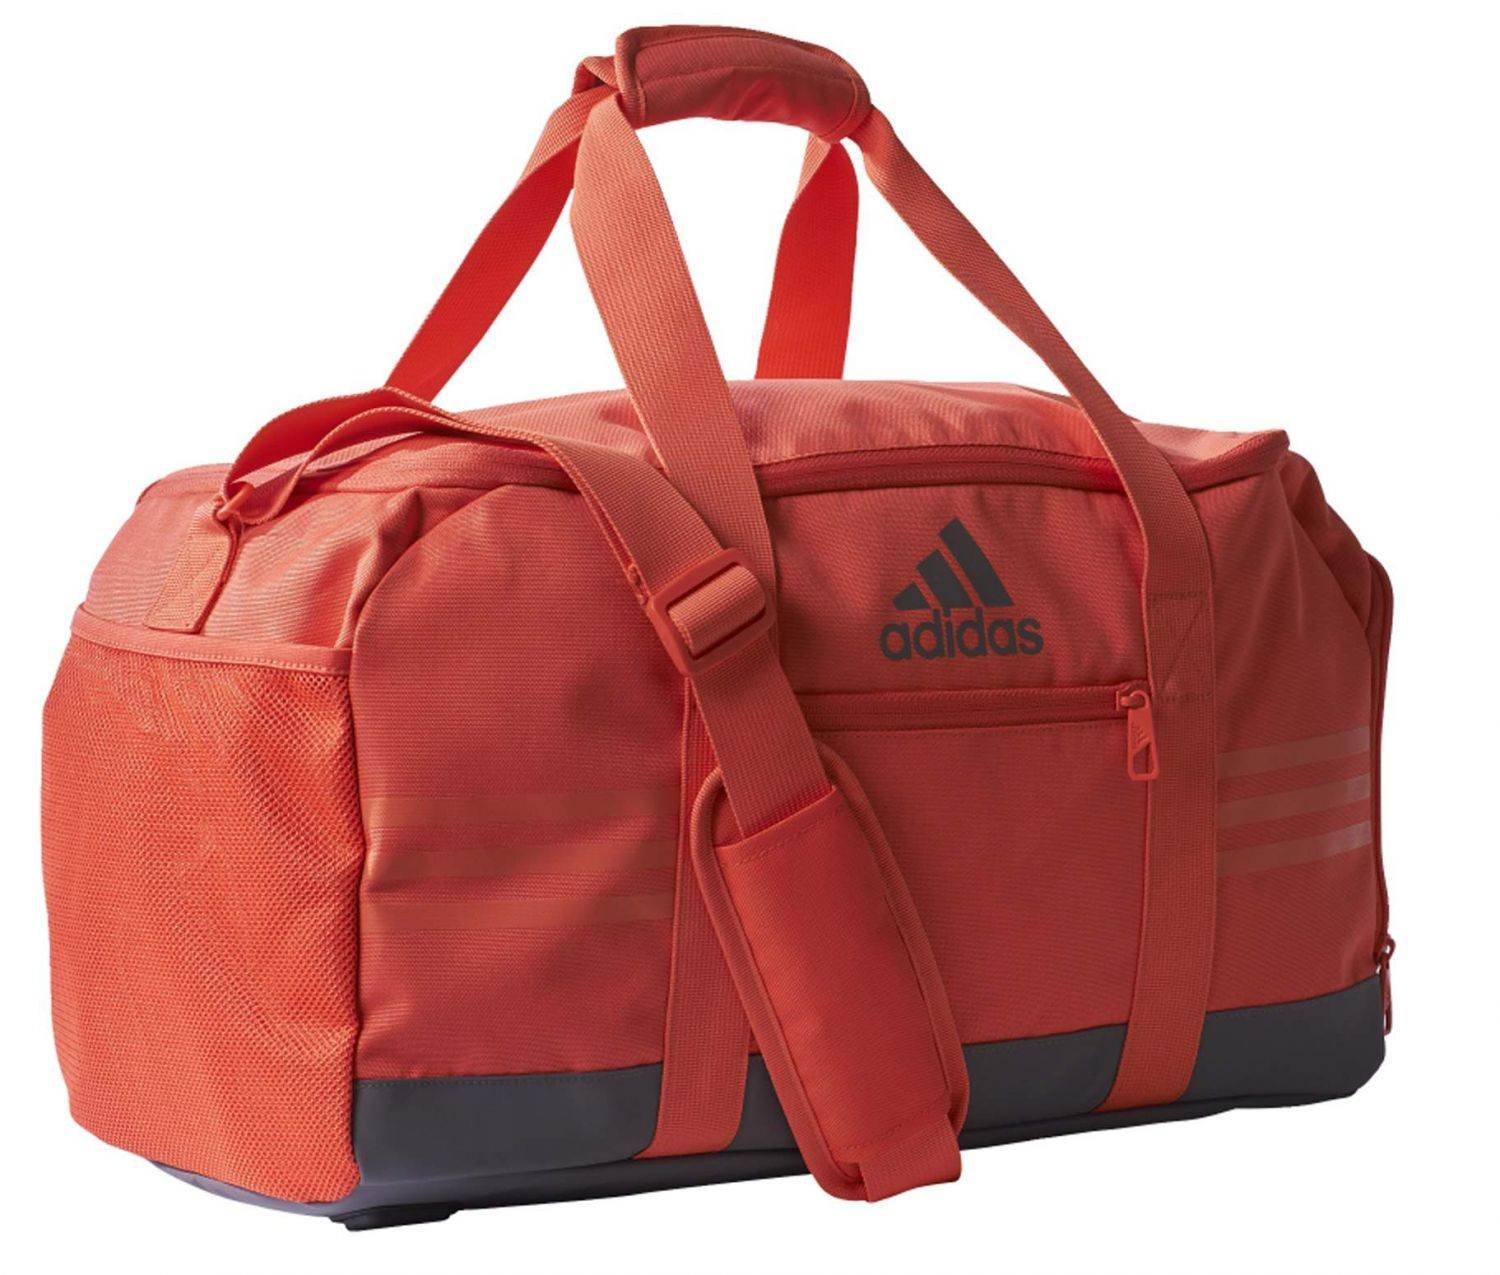 adidas-3stripes-performance-teambag-s-sporttasche-farbe-easy-coral-s17-easy-coral-s17-trace-grey-s